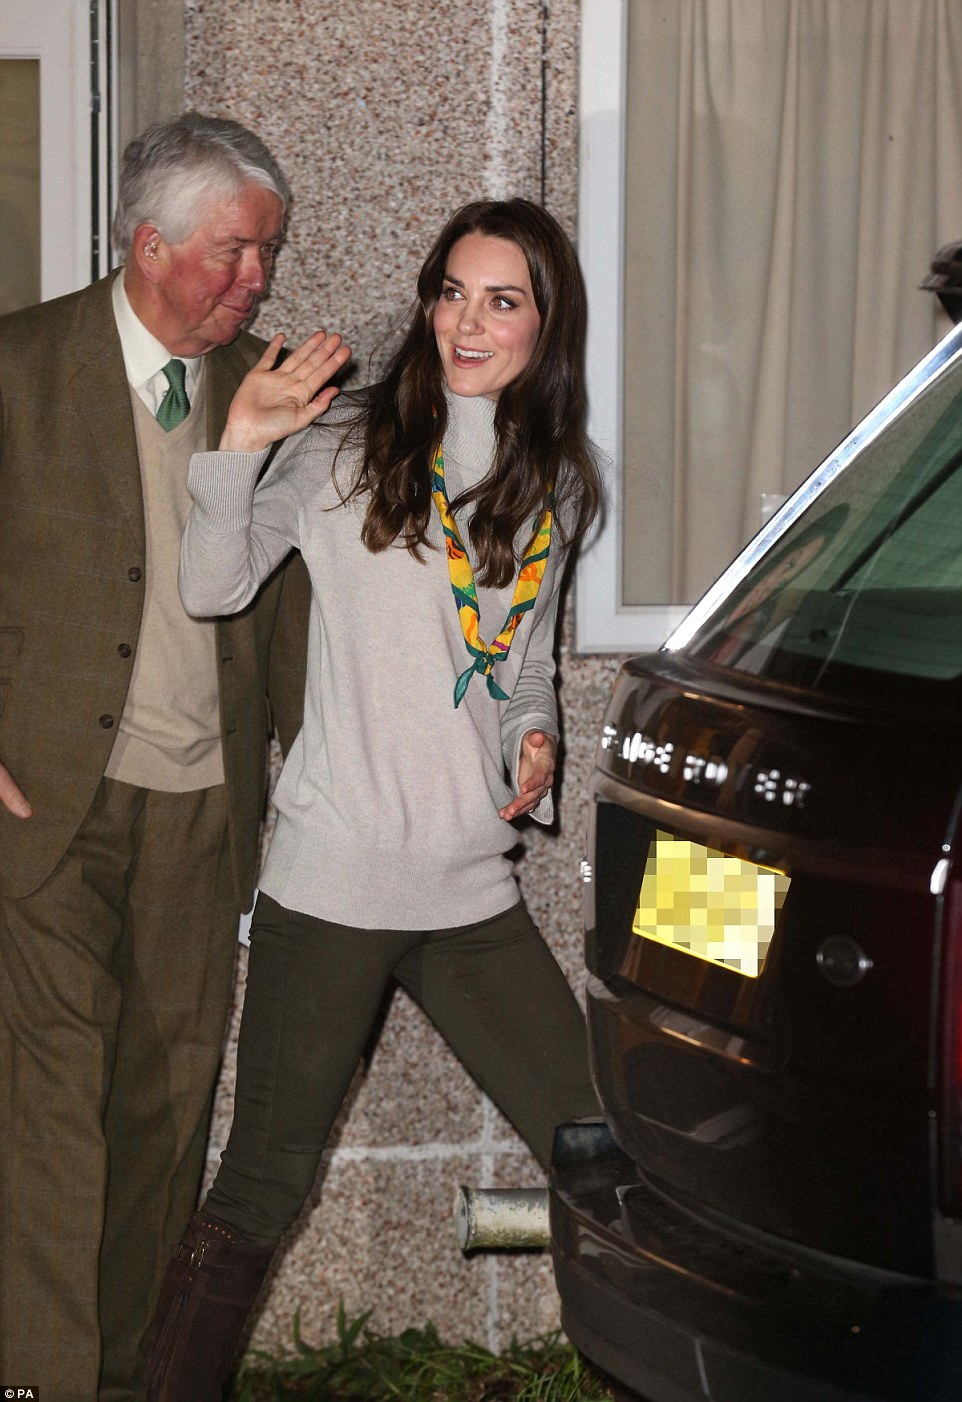 Bye for now! The Duchess, a former Brownies member, gets into a waiting car at the end of her visit in King's Lynn